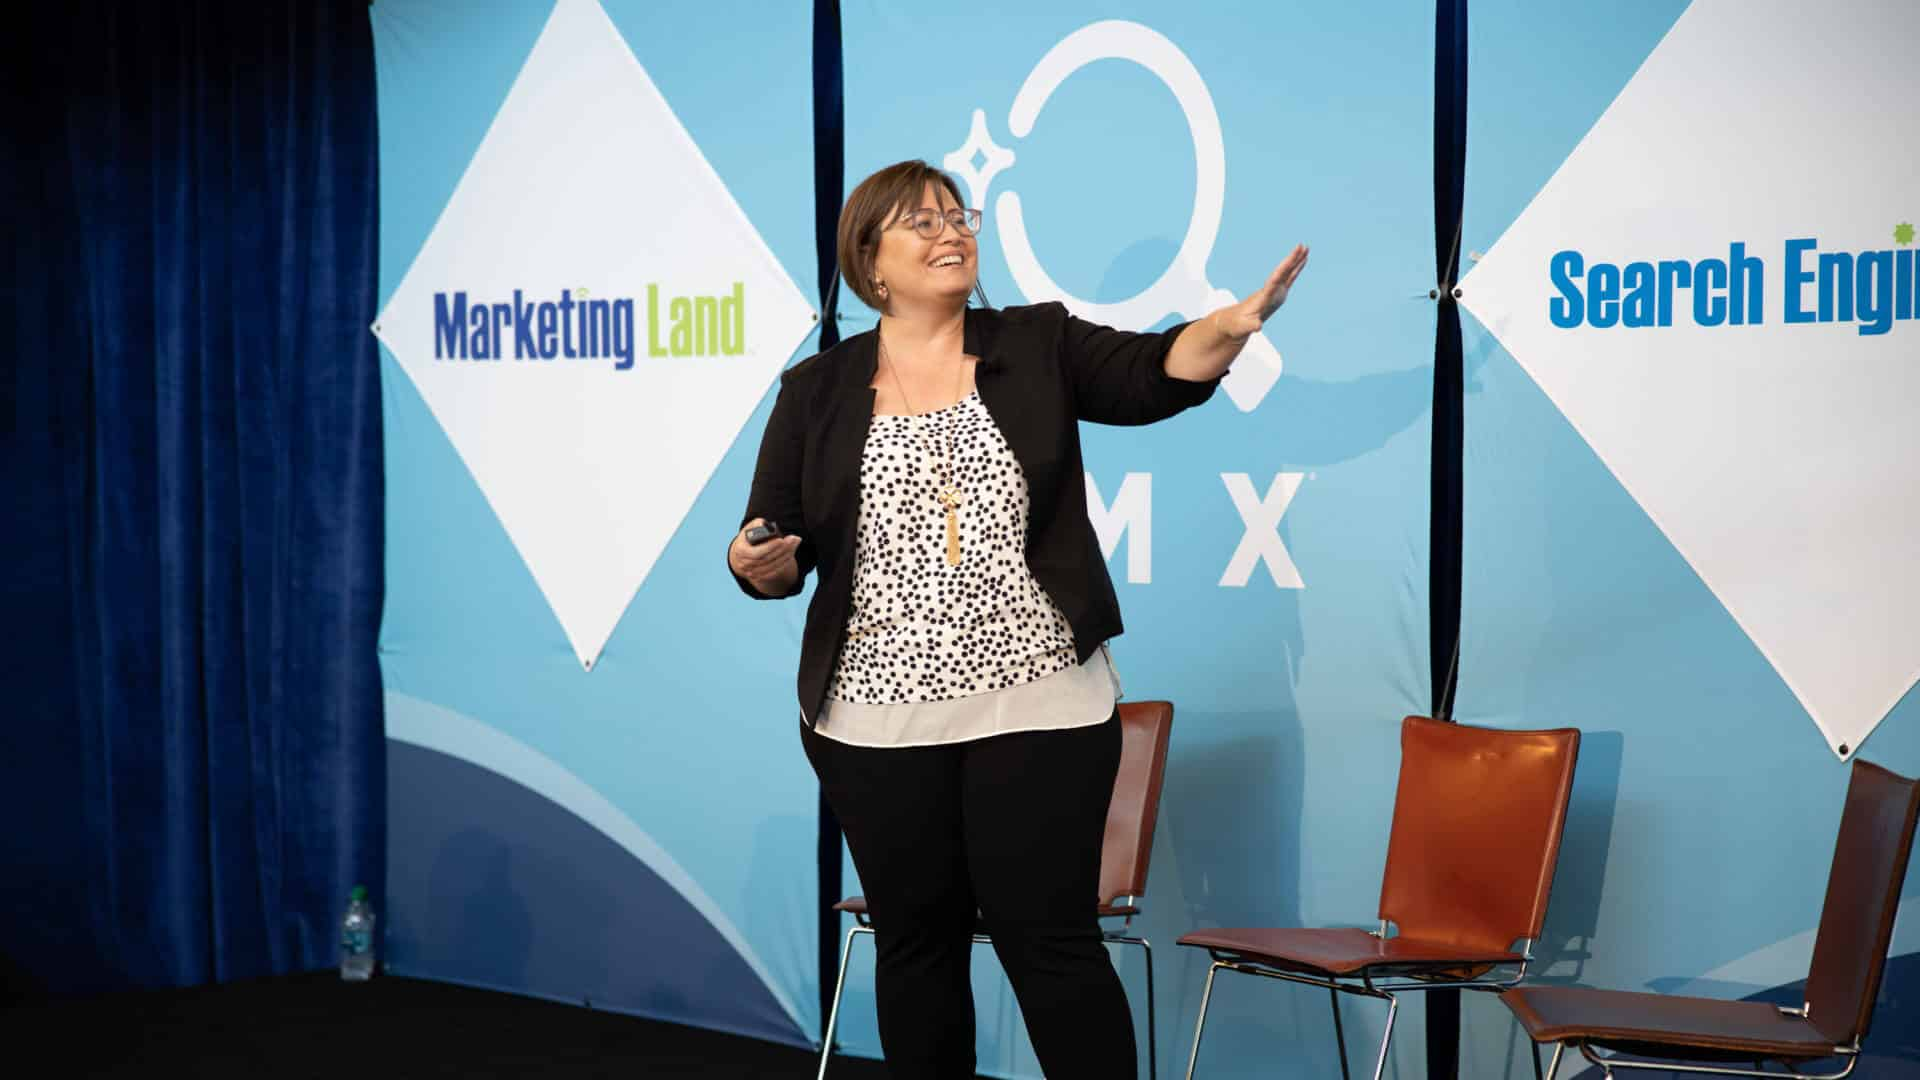 meet-the-search-marketing-experts-youll-train-with-at-smx Meet the search marketing experts you'll train with at SMX